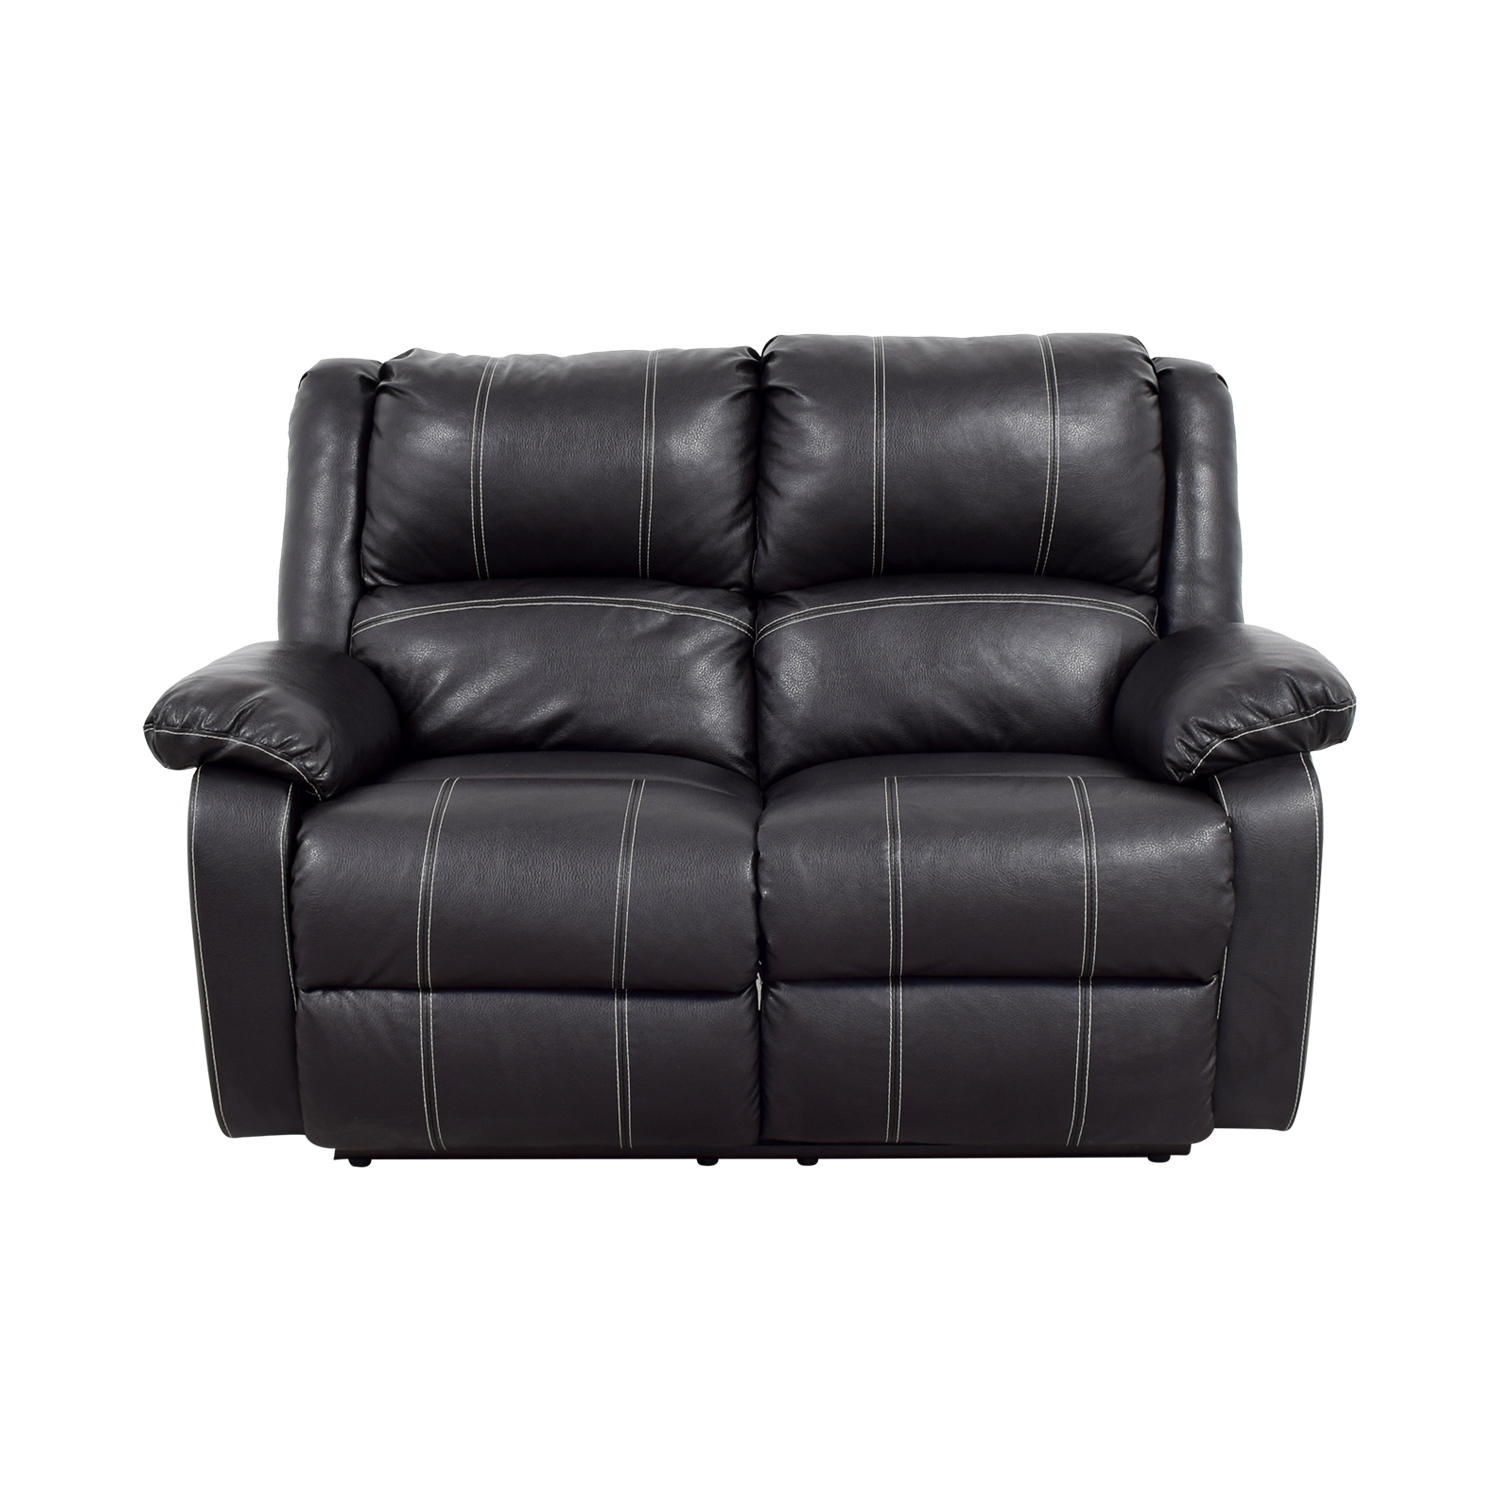 Buy reclining love seat used furniture on sale Leather reclining sofa loveseat